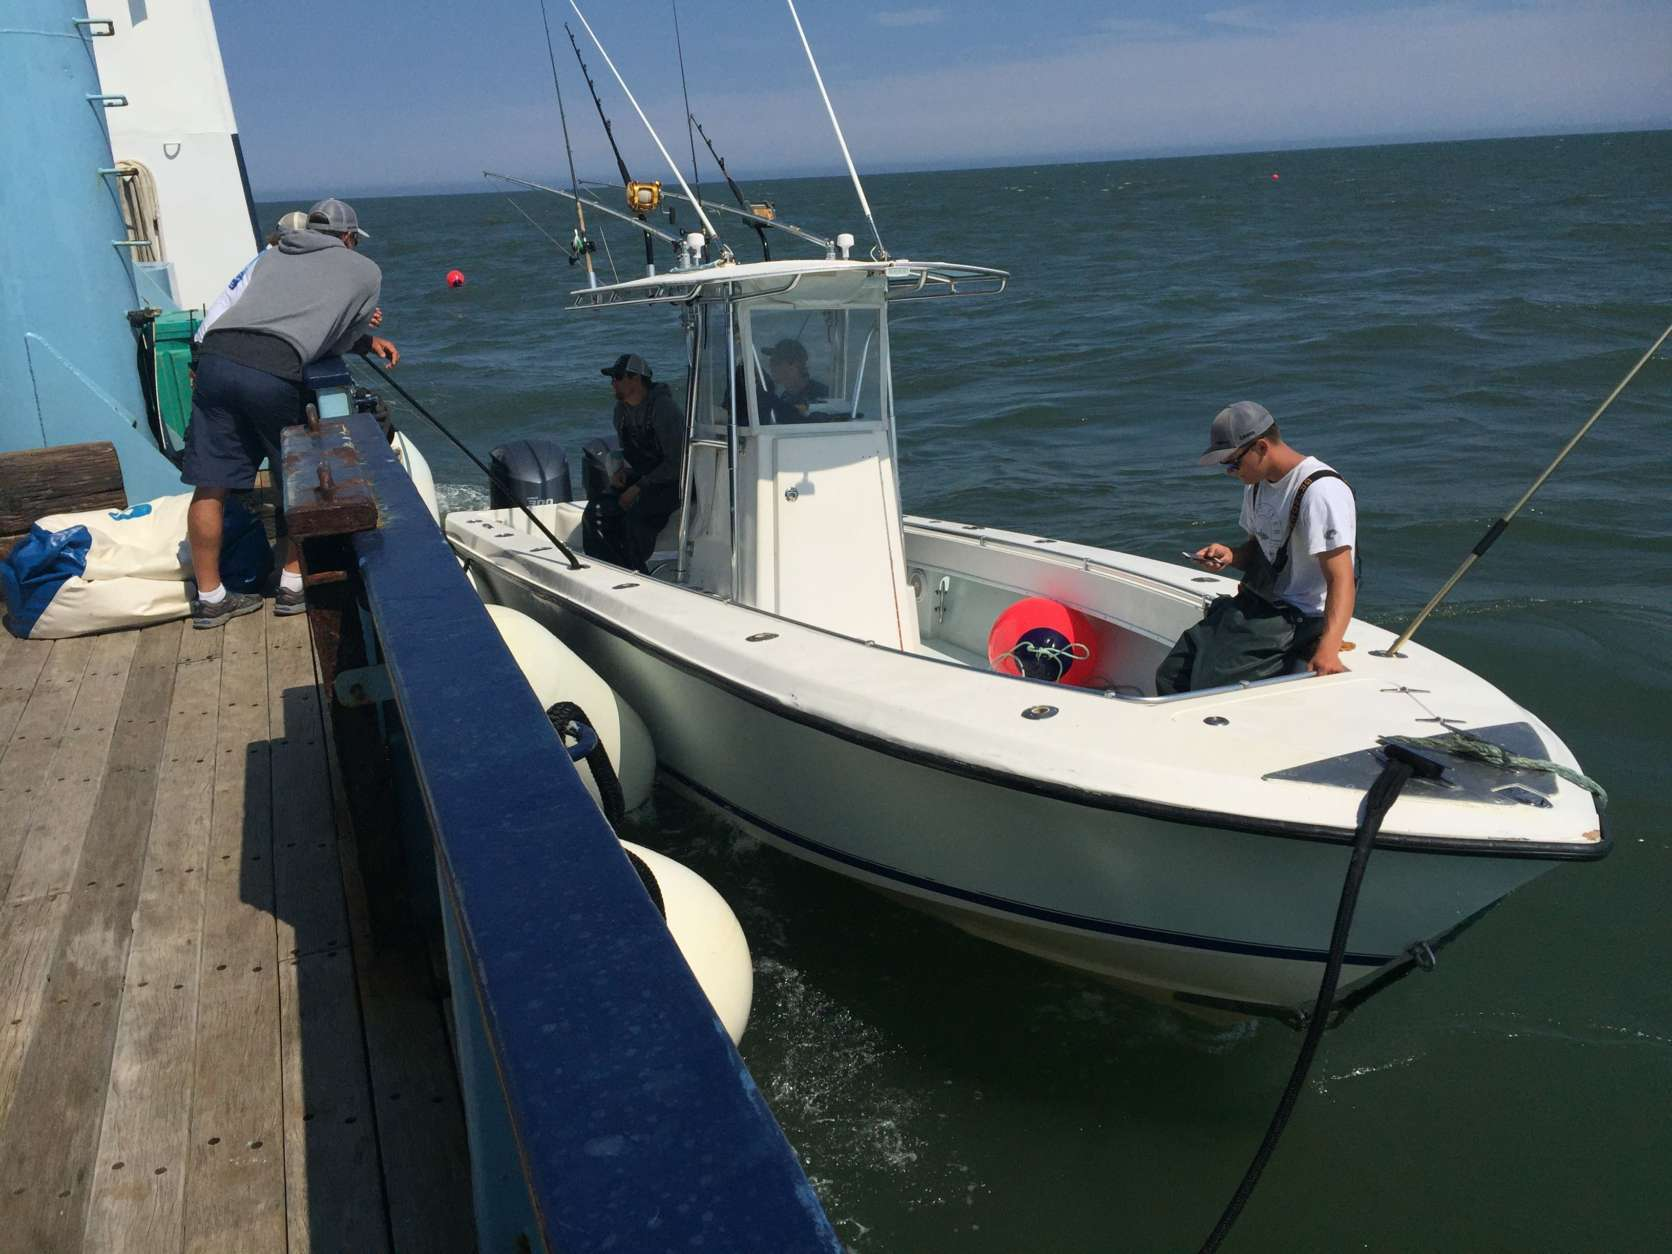 The smaller Contender is used by the OCEARCH team to catch sharks and tag them. (WTOP/Michelle Basch)